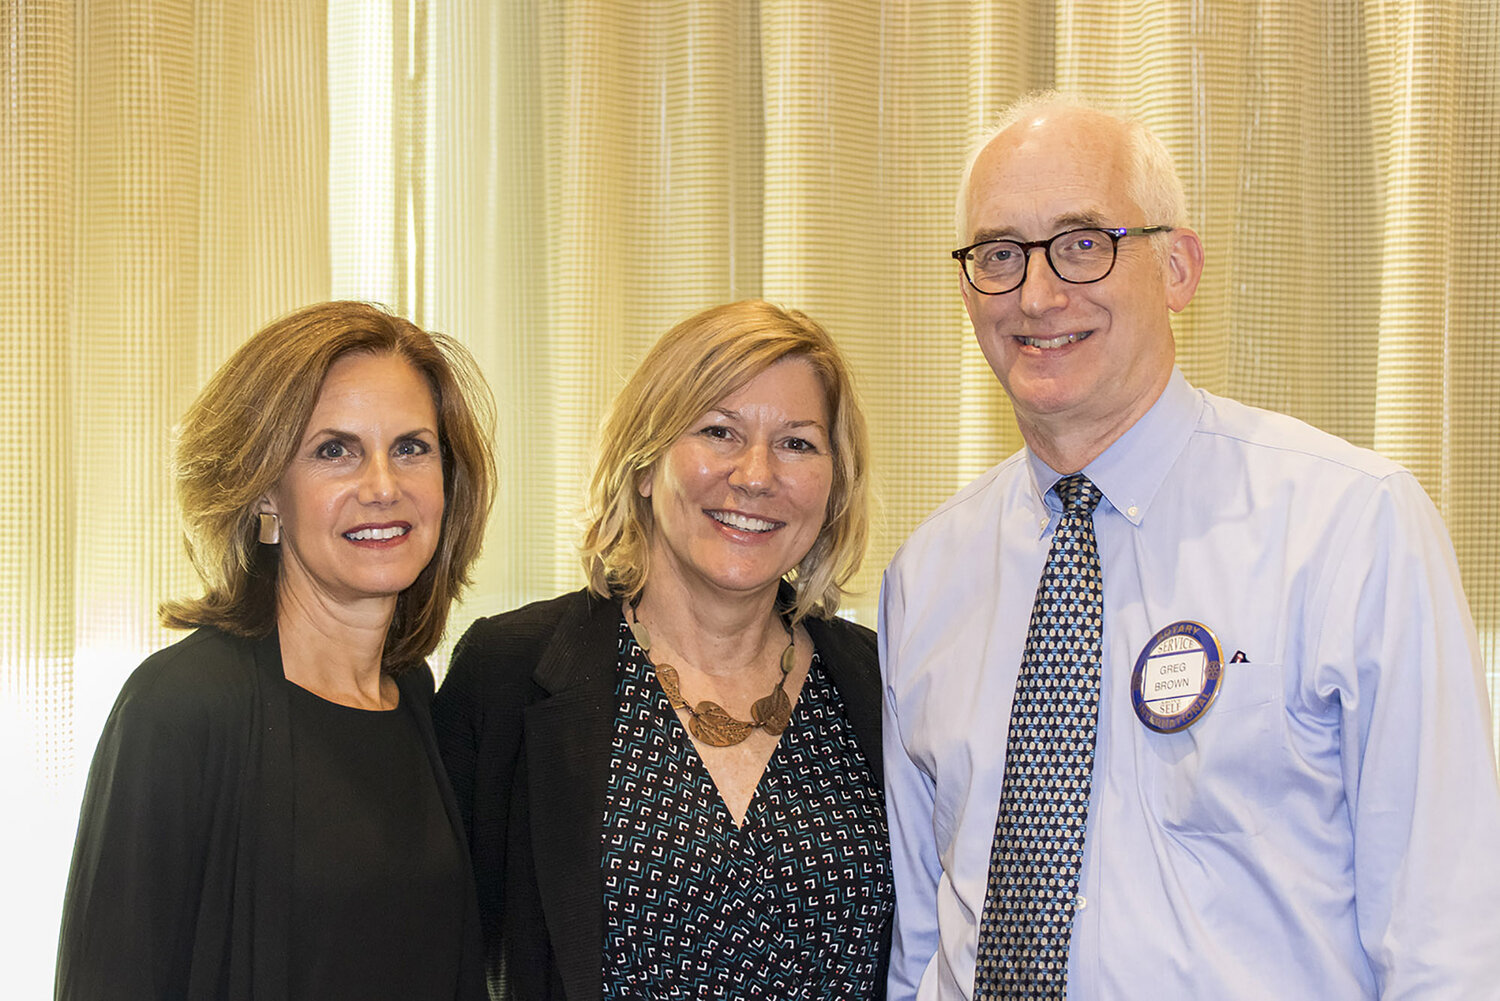 Task Force members Beth Murray, Sharon Mester, and Greg Brown presented the 2030 report to the Rotary Club of Swarthmore at its August 22 meeting.  Photo by Gudmund Iversen.